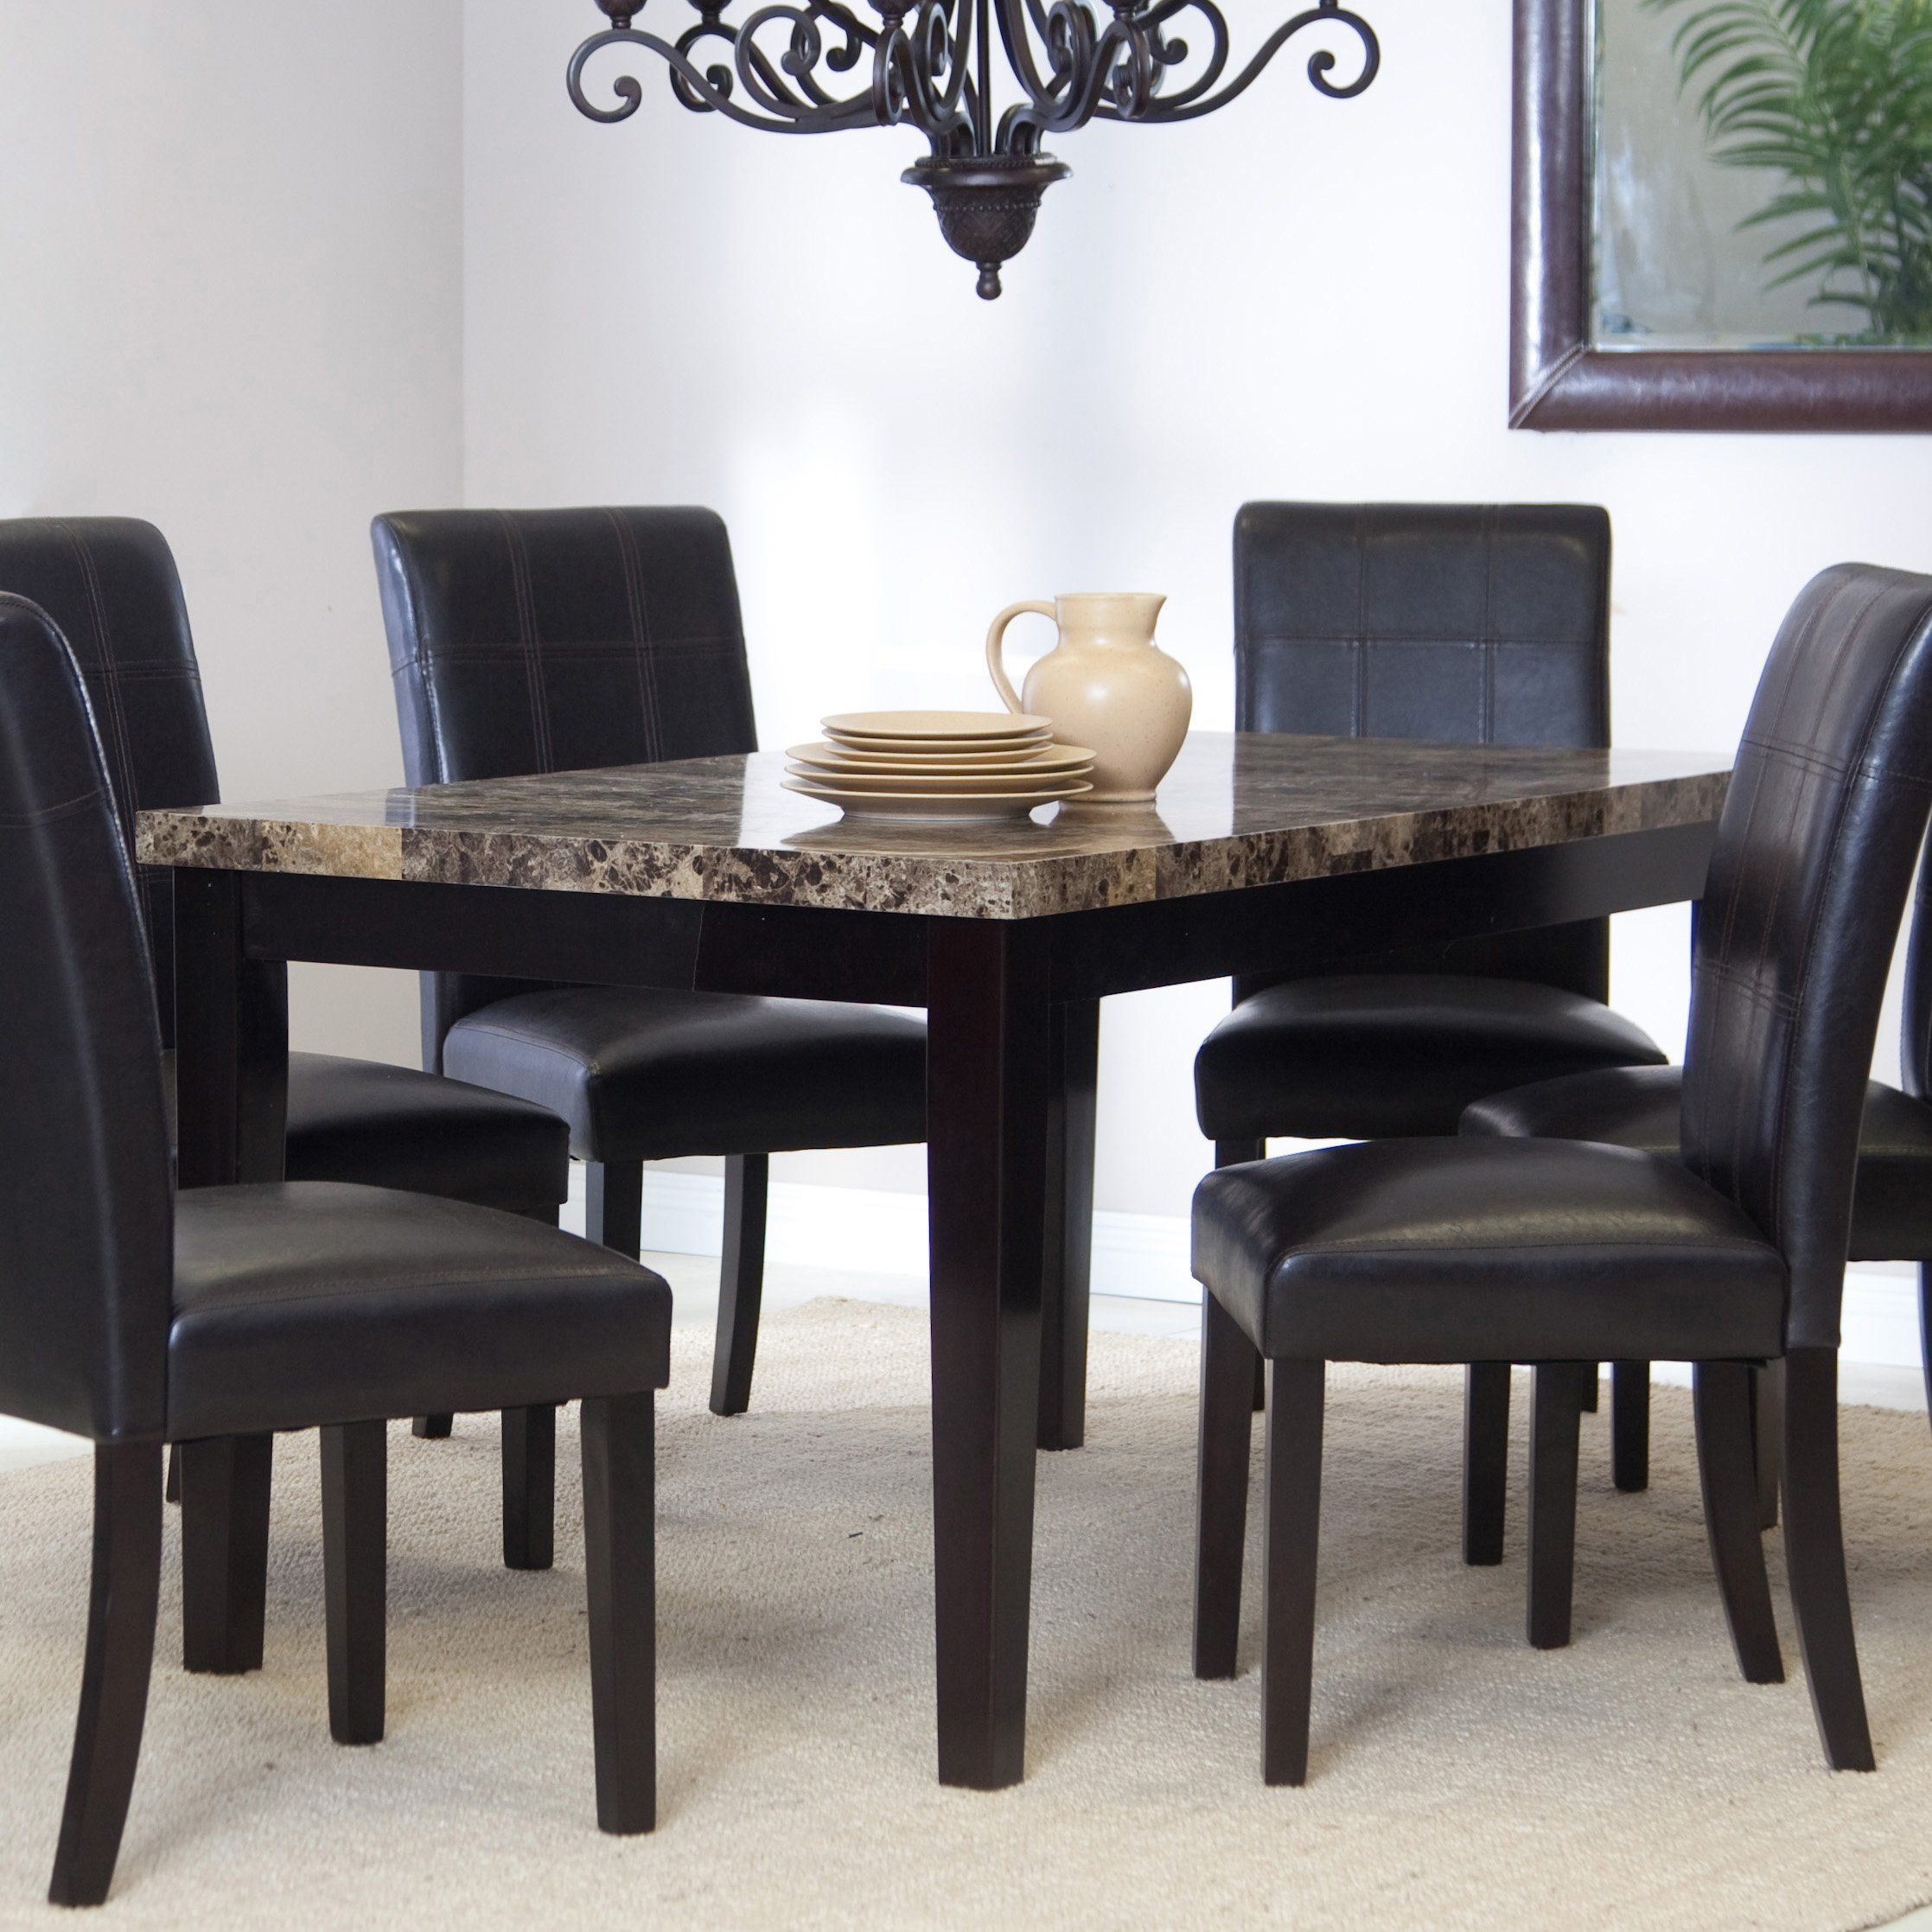 Palazzo Dining Table  Every Meal Will Be More Elegant When Eaten Simple Dining Room Tables Walmart Inspiration Design